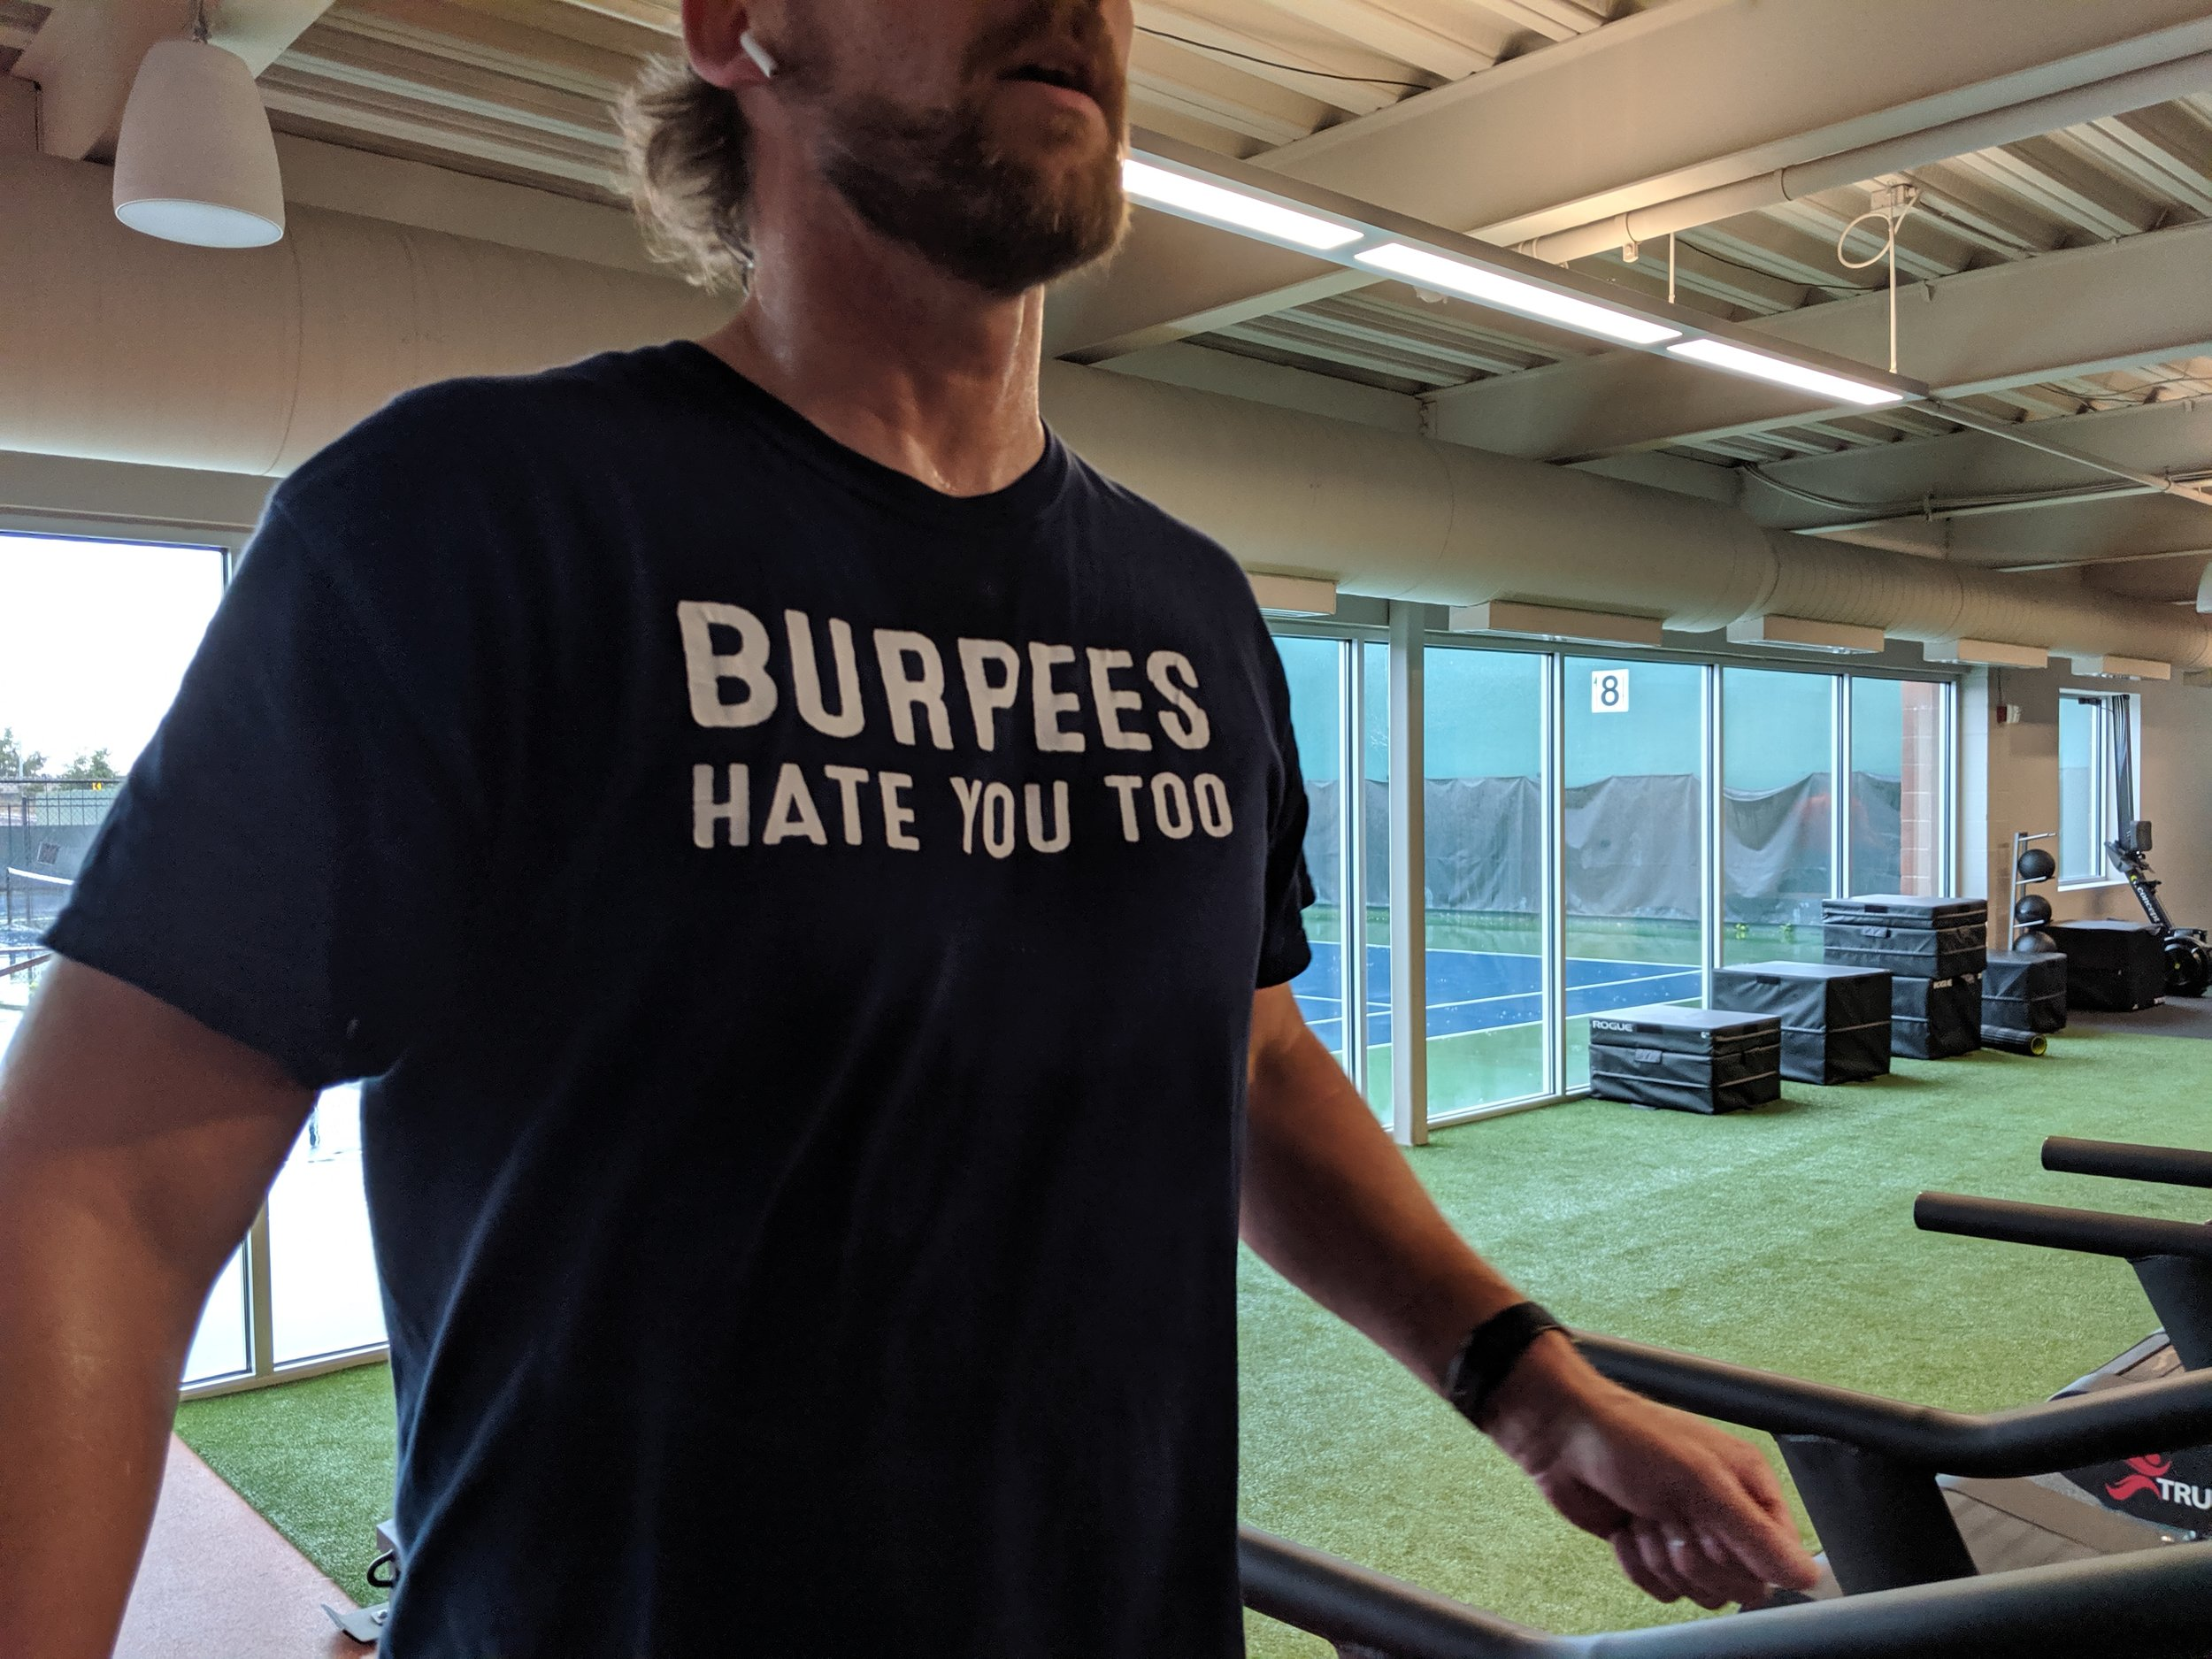 Scott knows burpees!